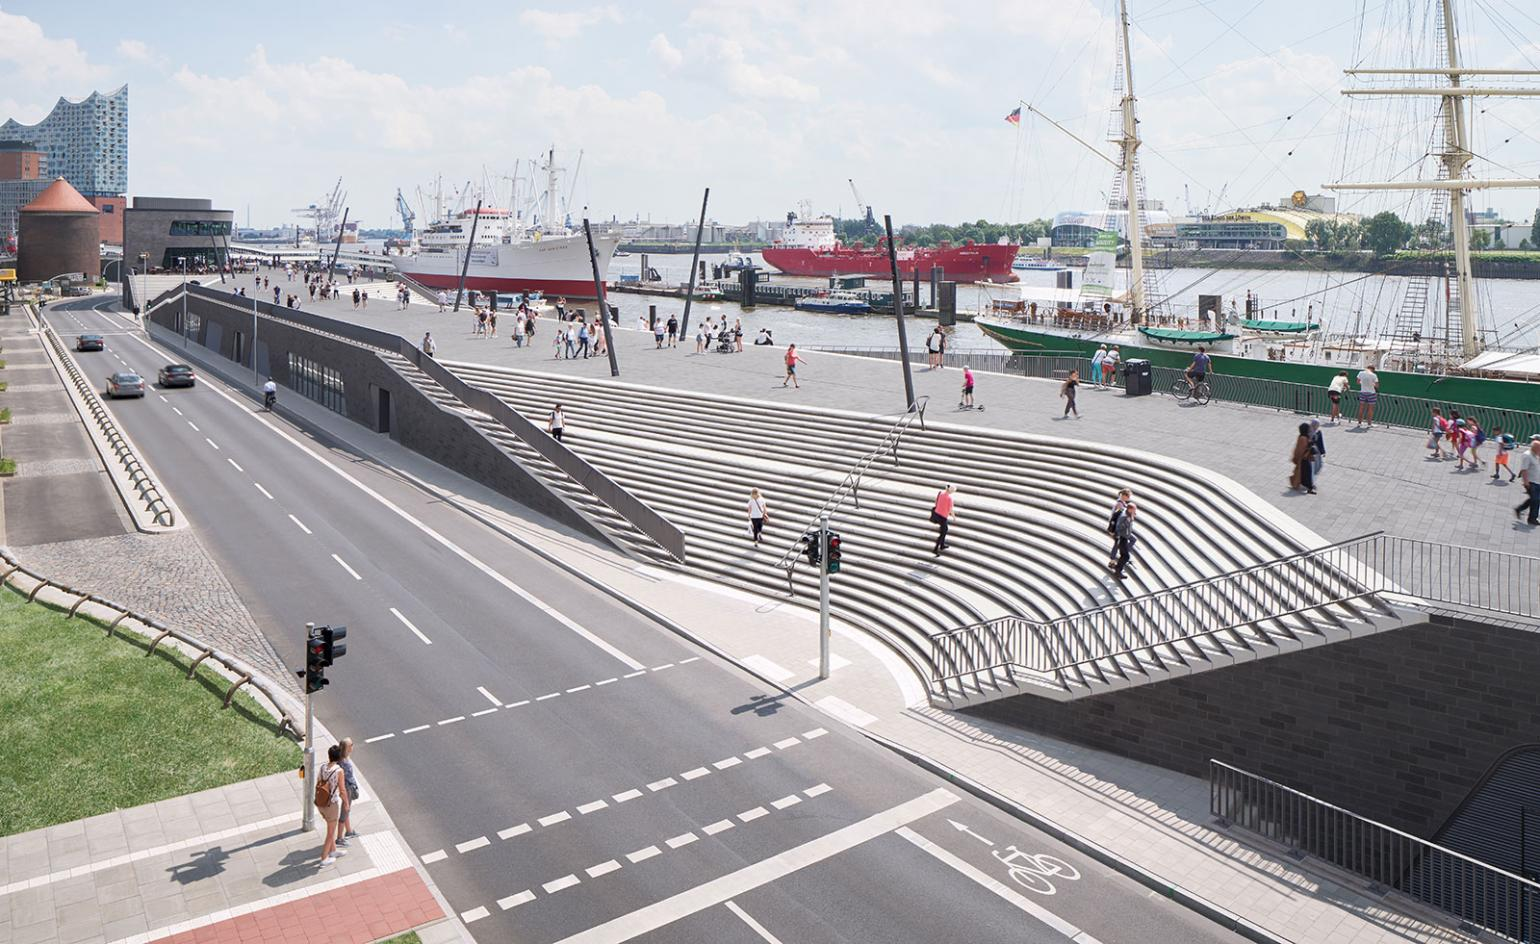 Zaha Hadid Architects carves out riverside promenade and flood barrier for Hamburg